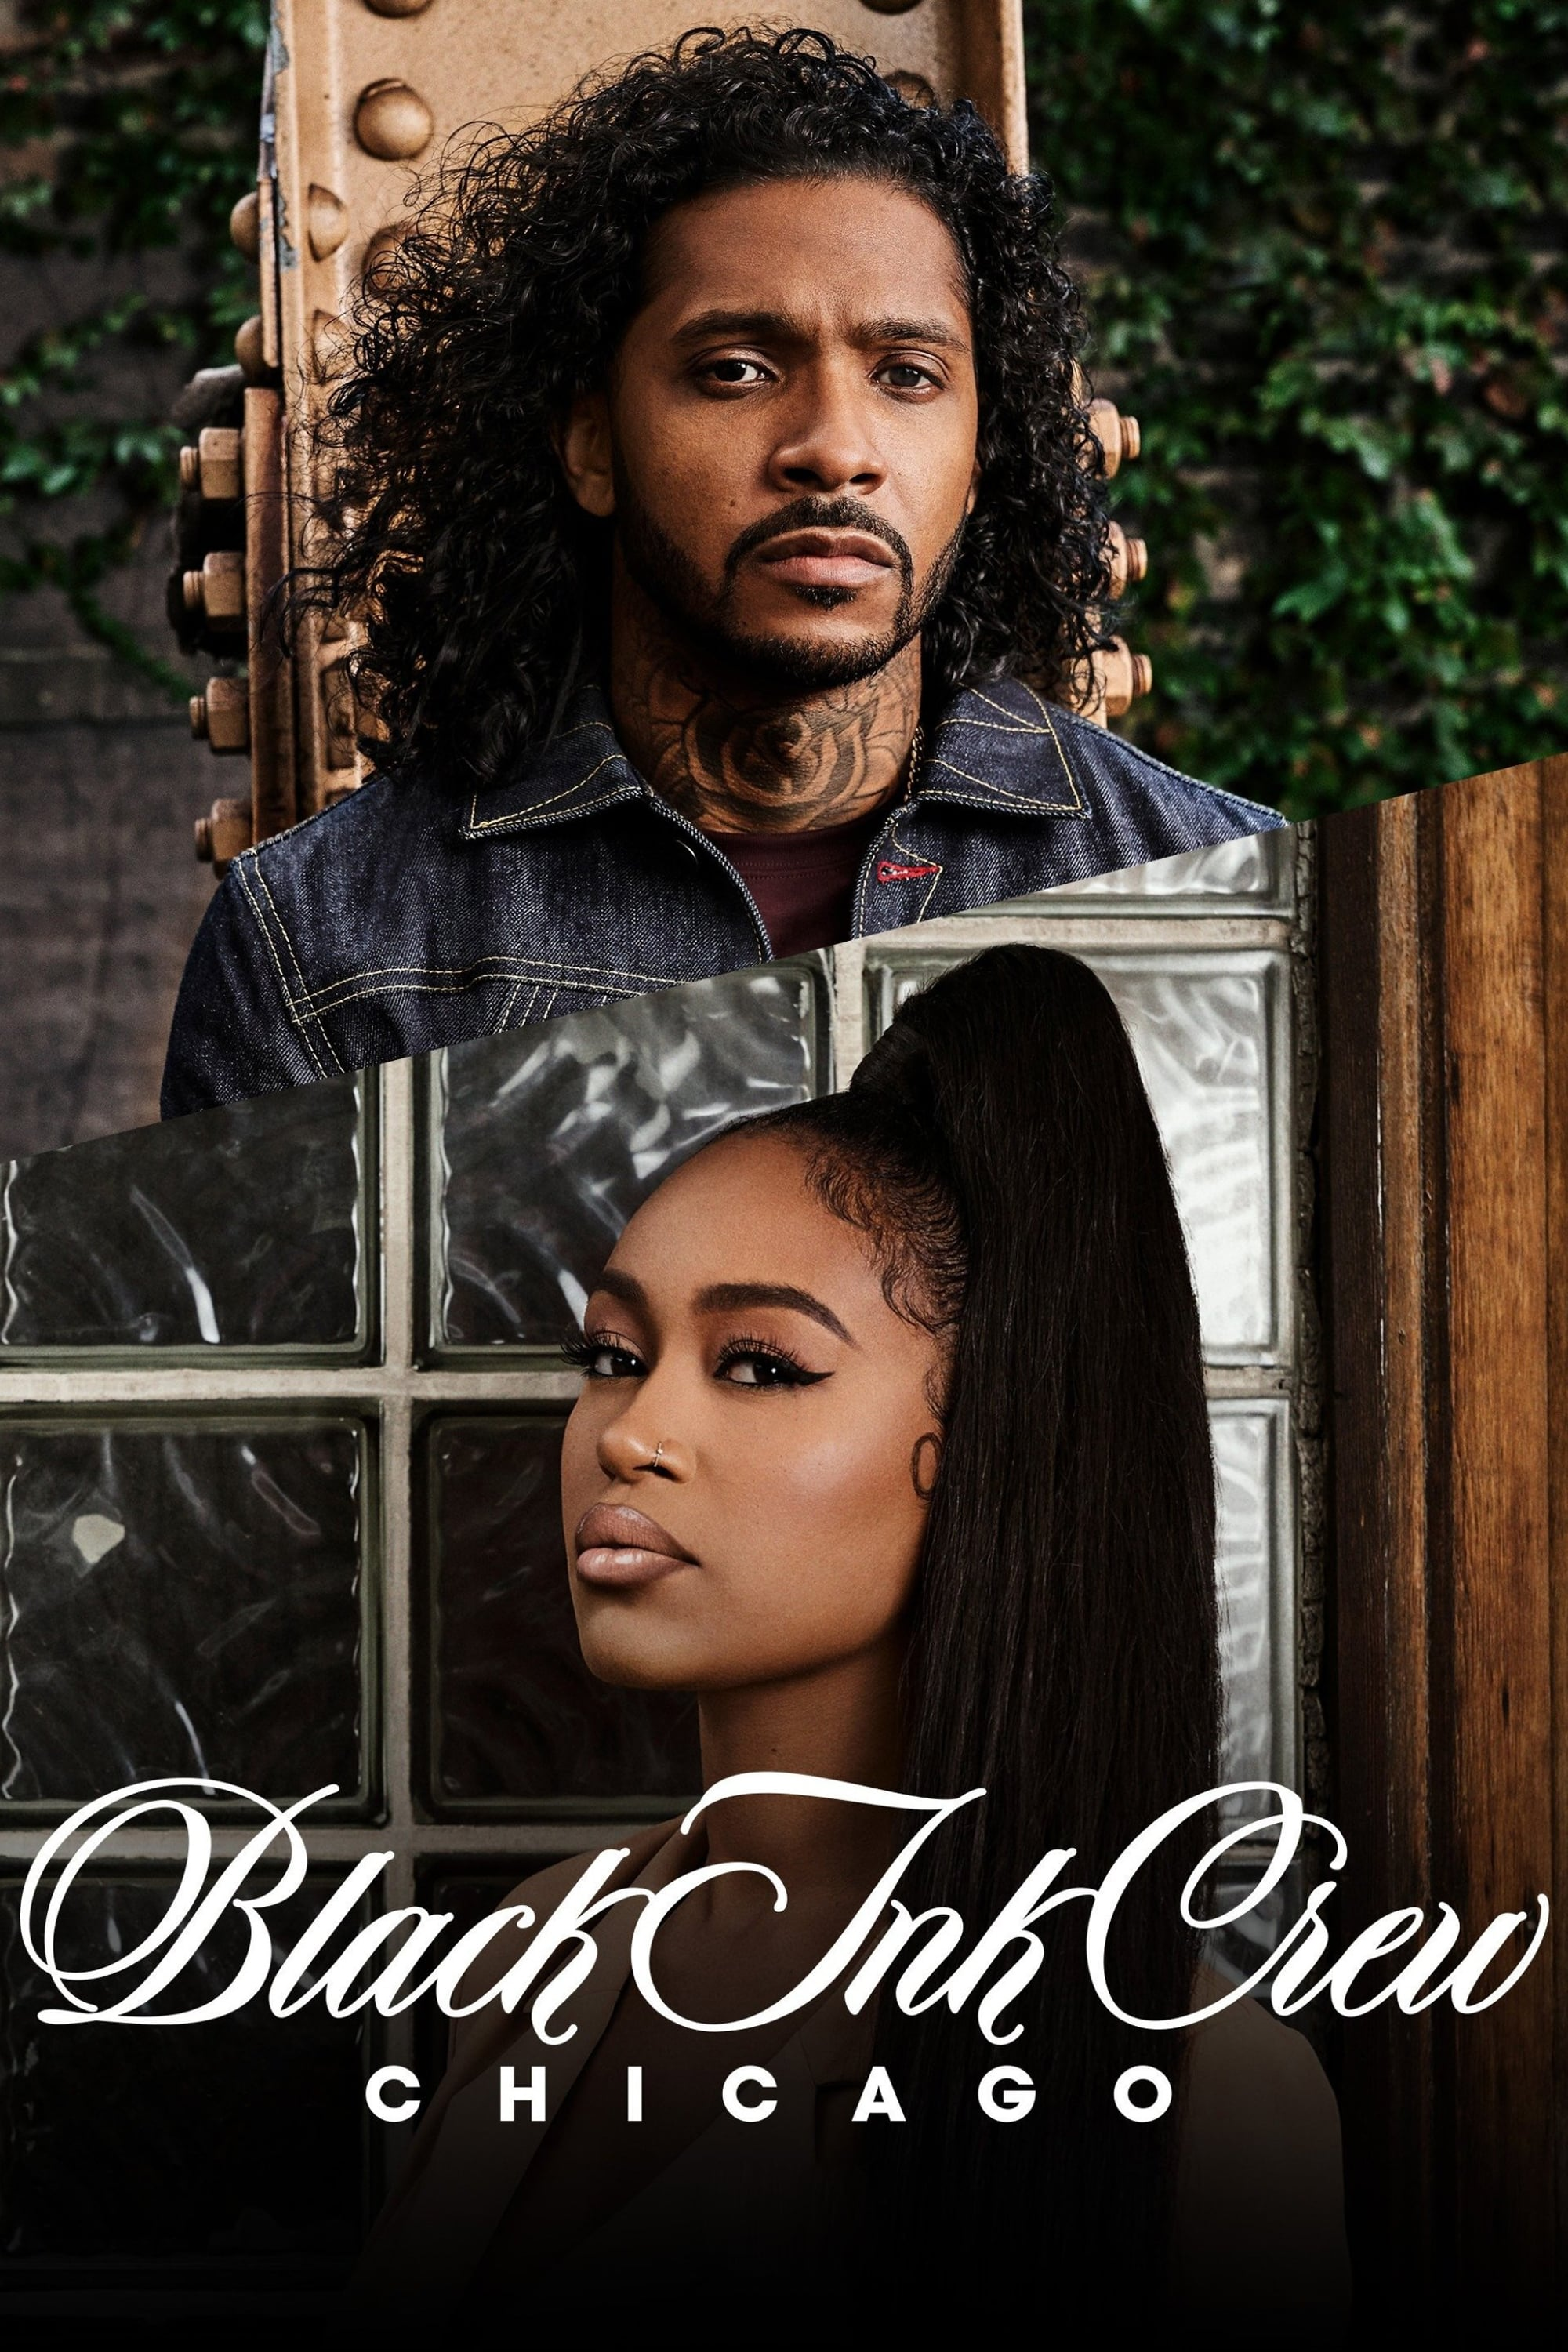 Black Ink Crew Chicago (2015)